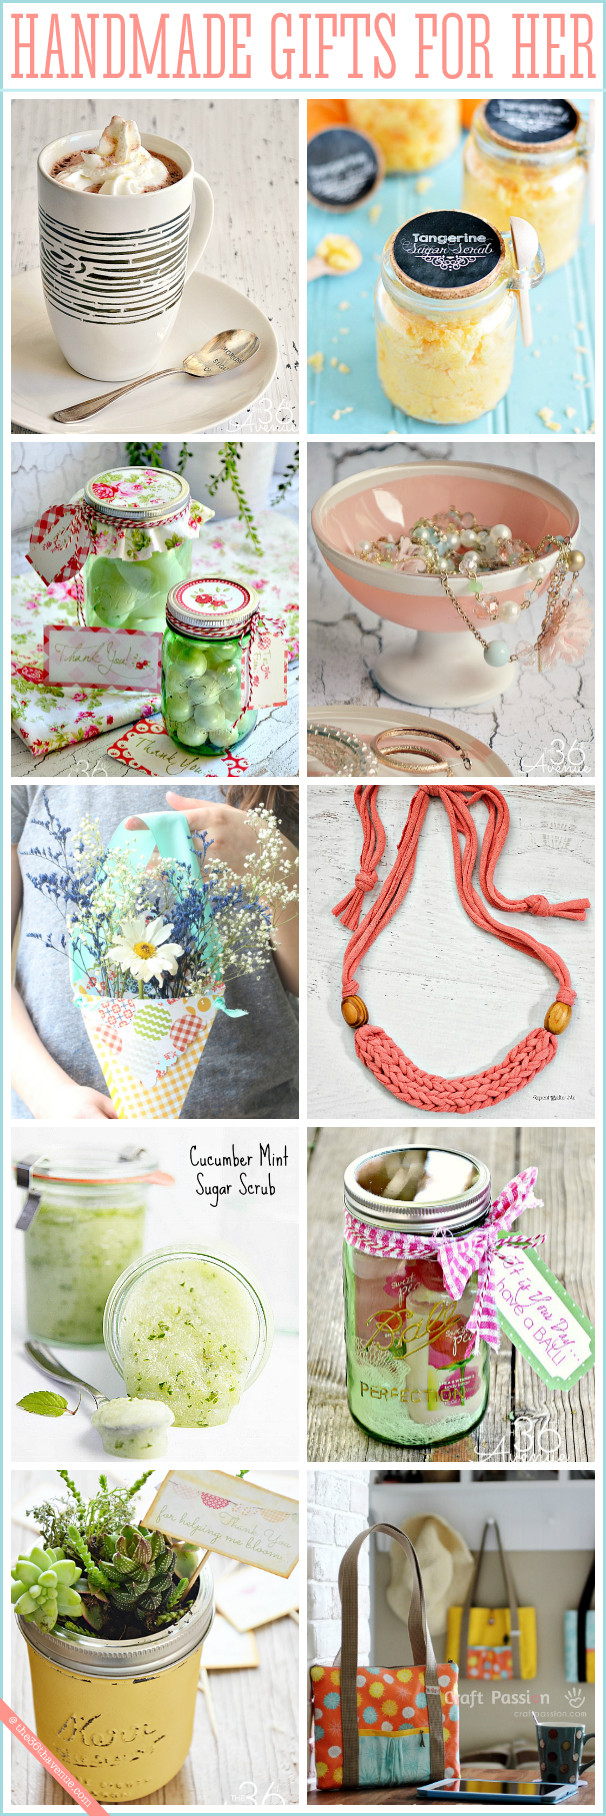 Best ideas about DIY Christmas Gift For Her . Save or Pin Handmade Gifts for Women The 36th AVENUE Now.